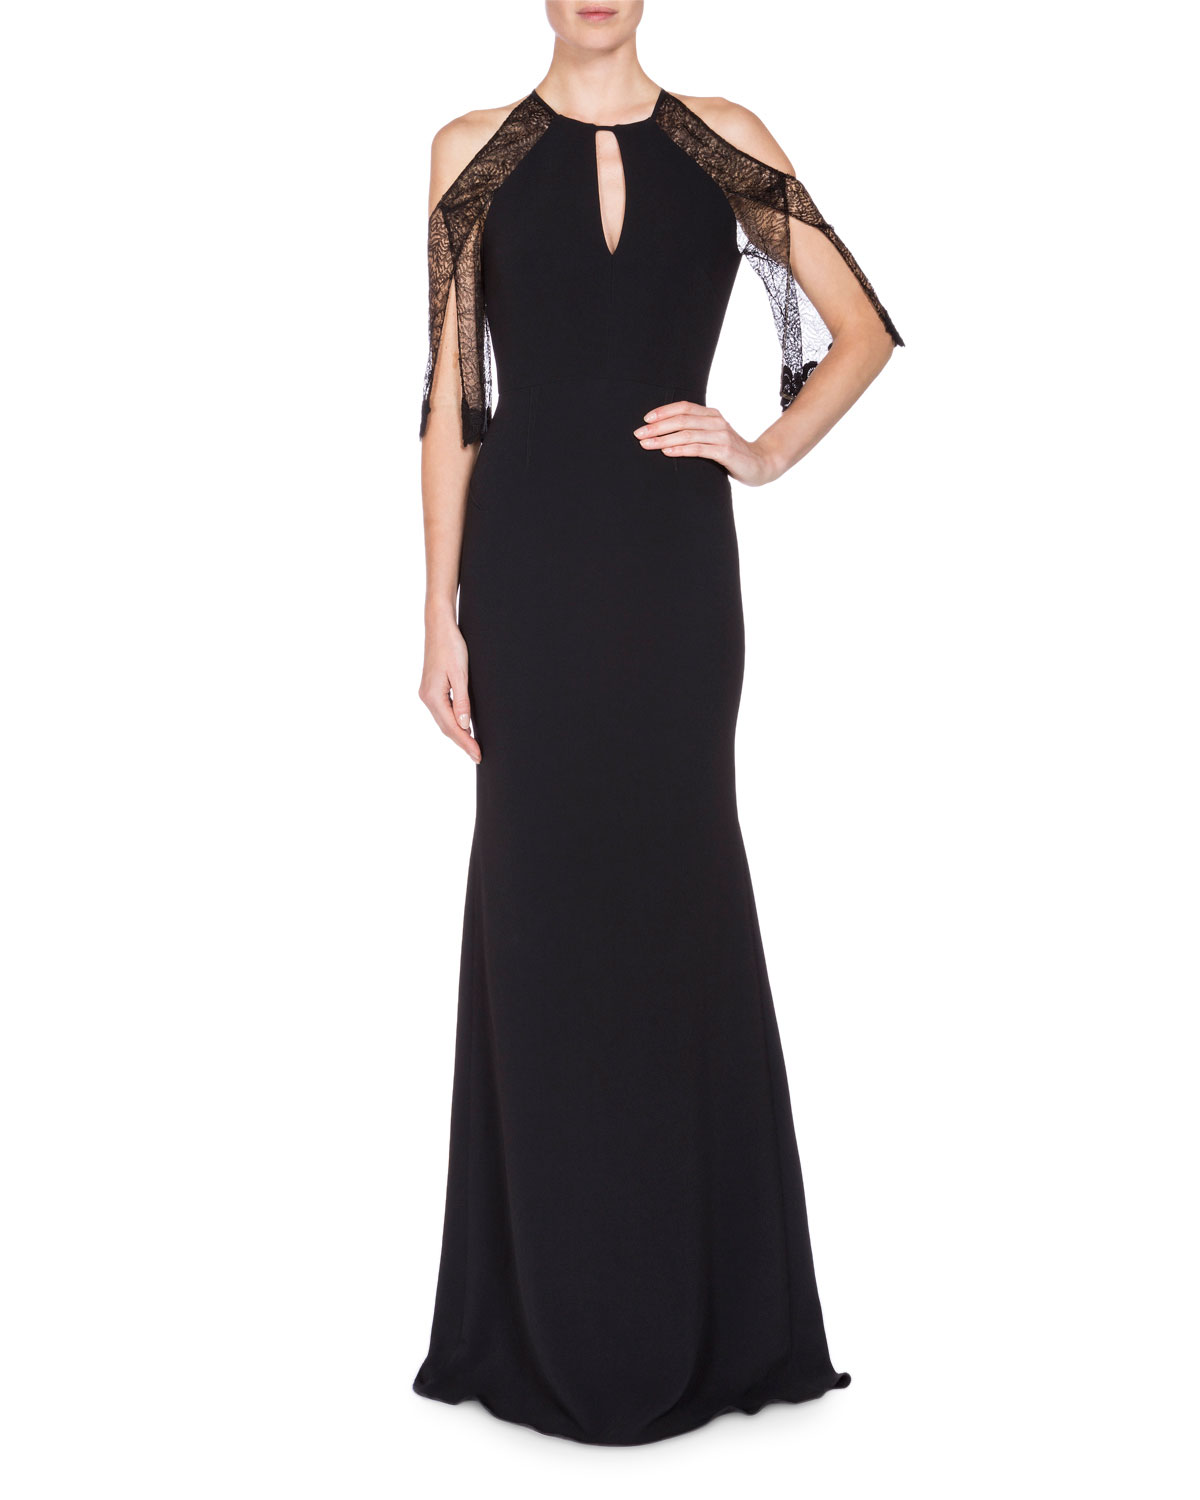 Roland Mouret Lace-Sleeve Keyhole Mermaid Gown, Black | Neiman Marcus